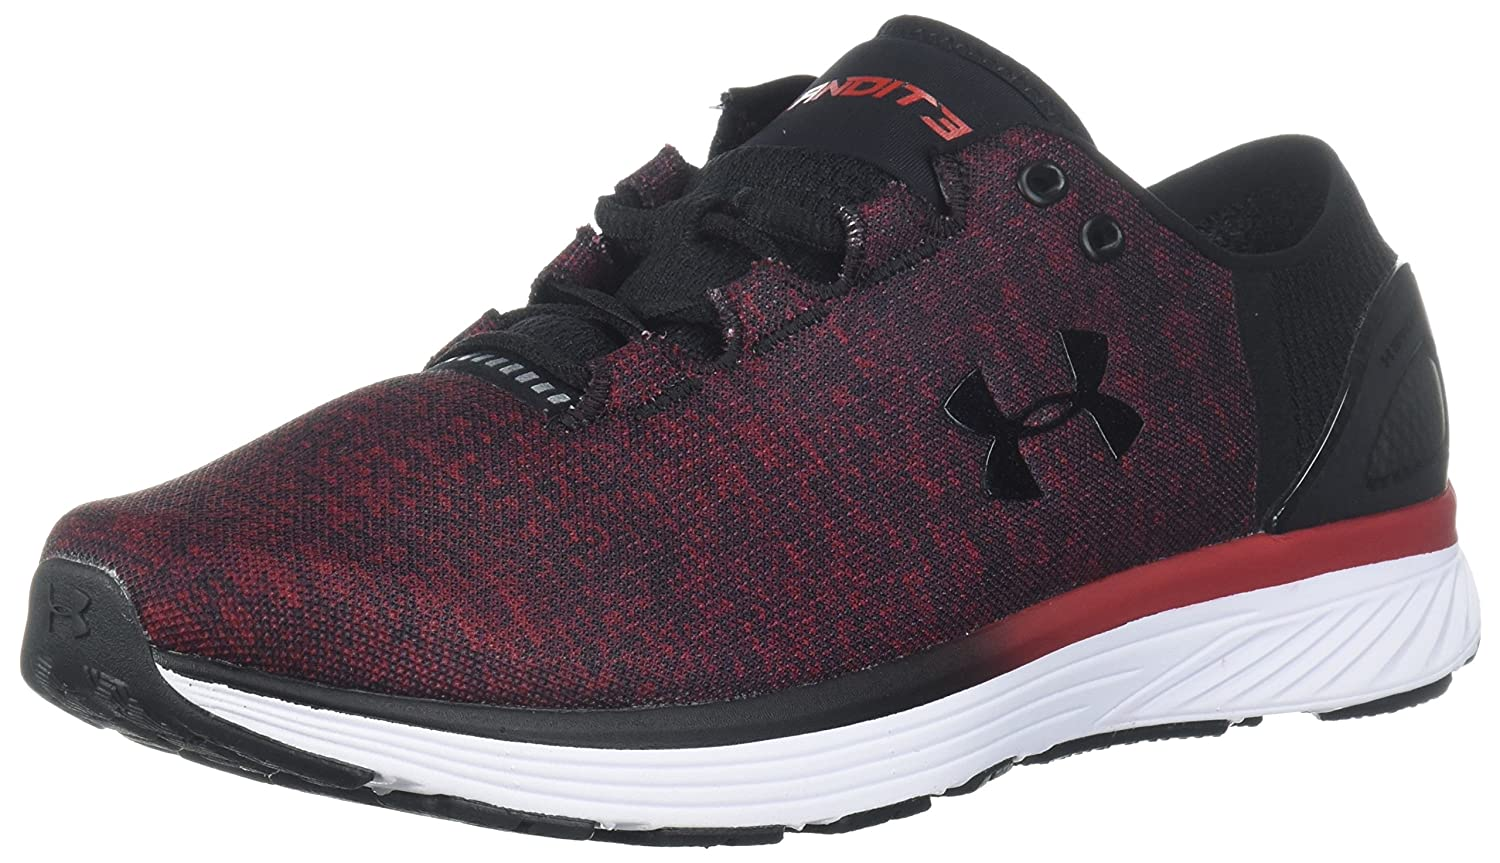 Under Armour Women's Charged Bandit 3 Running Shoe B0714DFYPV 9 M US|Spice Red (603)/Black